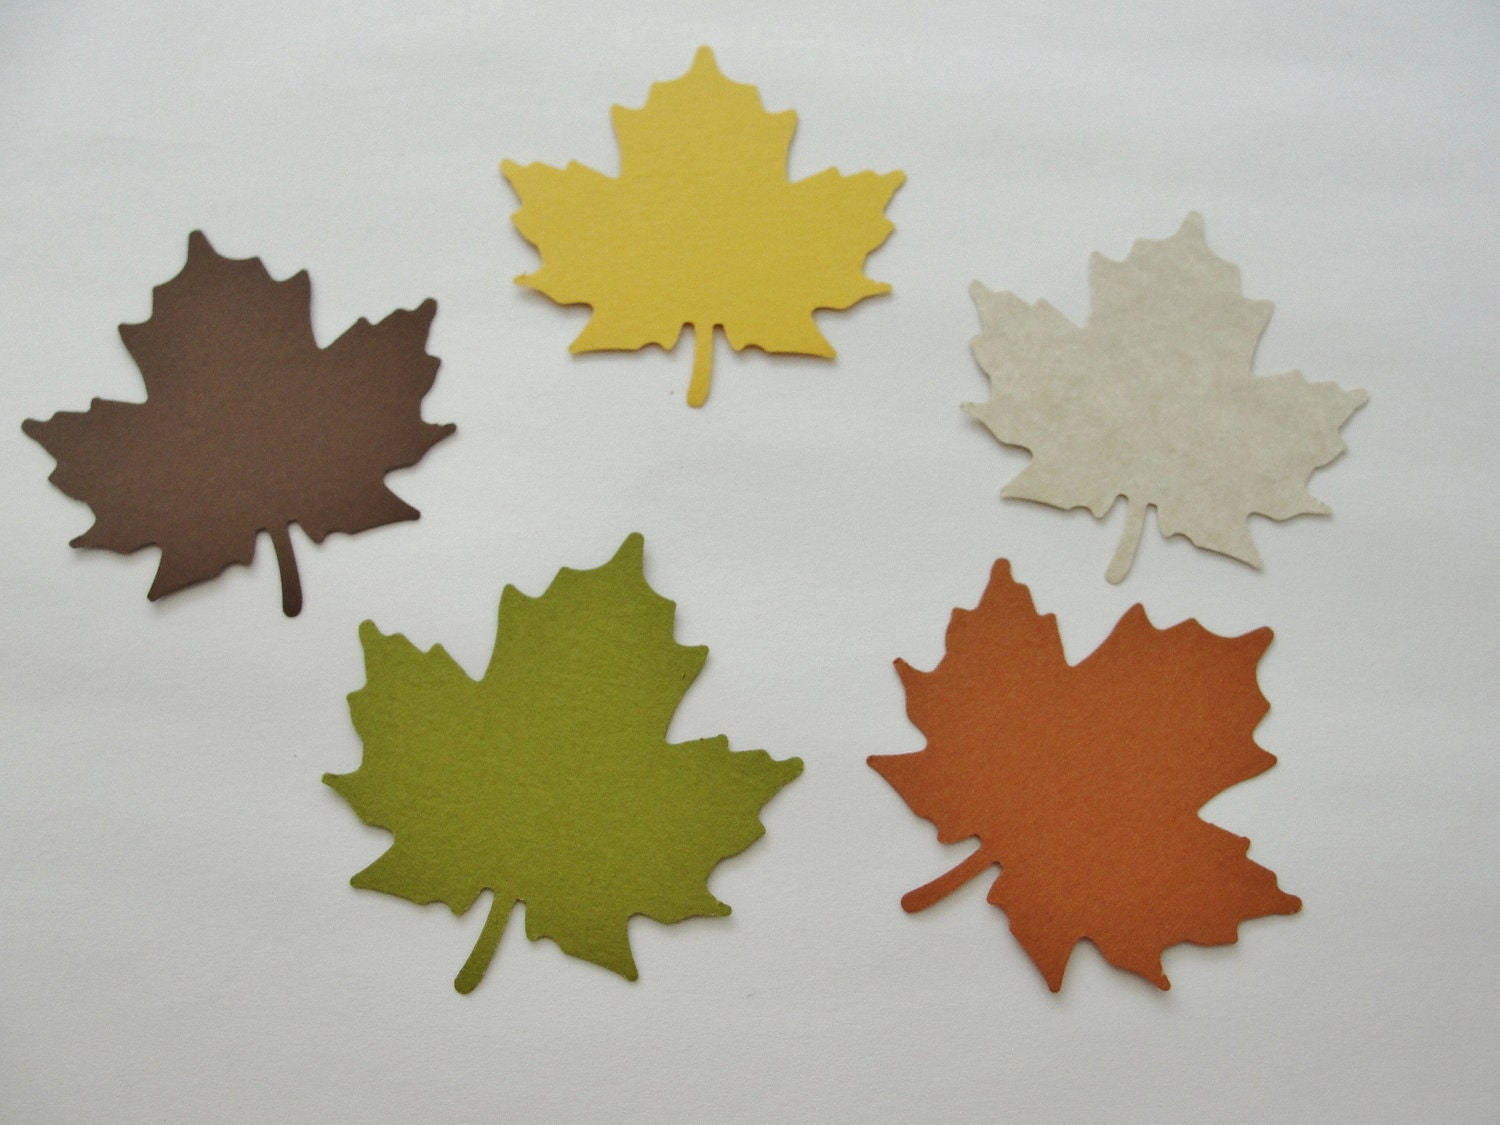 autumn leaves essays Why leaves turn color in the essays fall, season of the year between summer and winter, from late september to late december in the northern hemisphere, also known as autumn a total moron can understand this concept sense the day they were born, but ackerman description of fall couldn't.